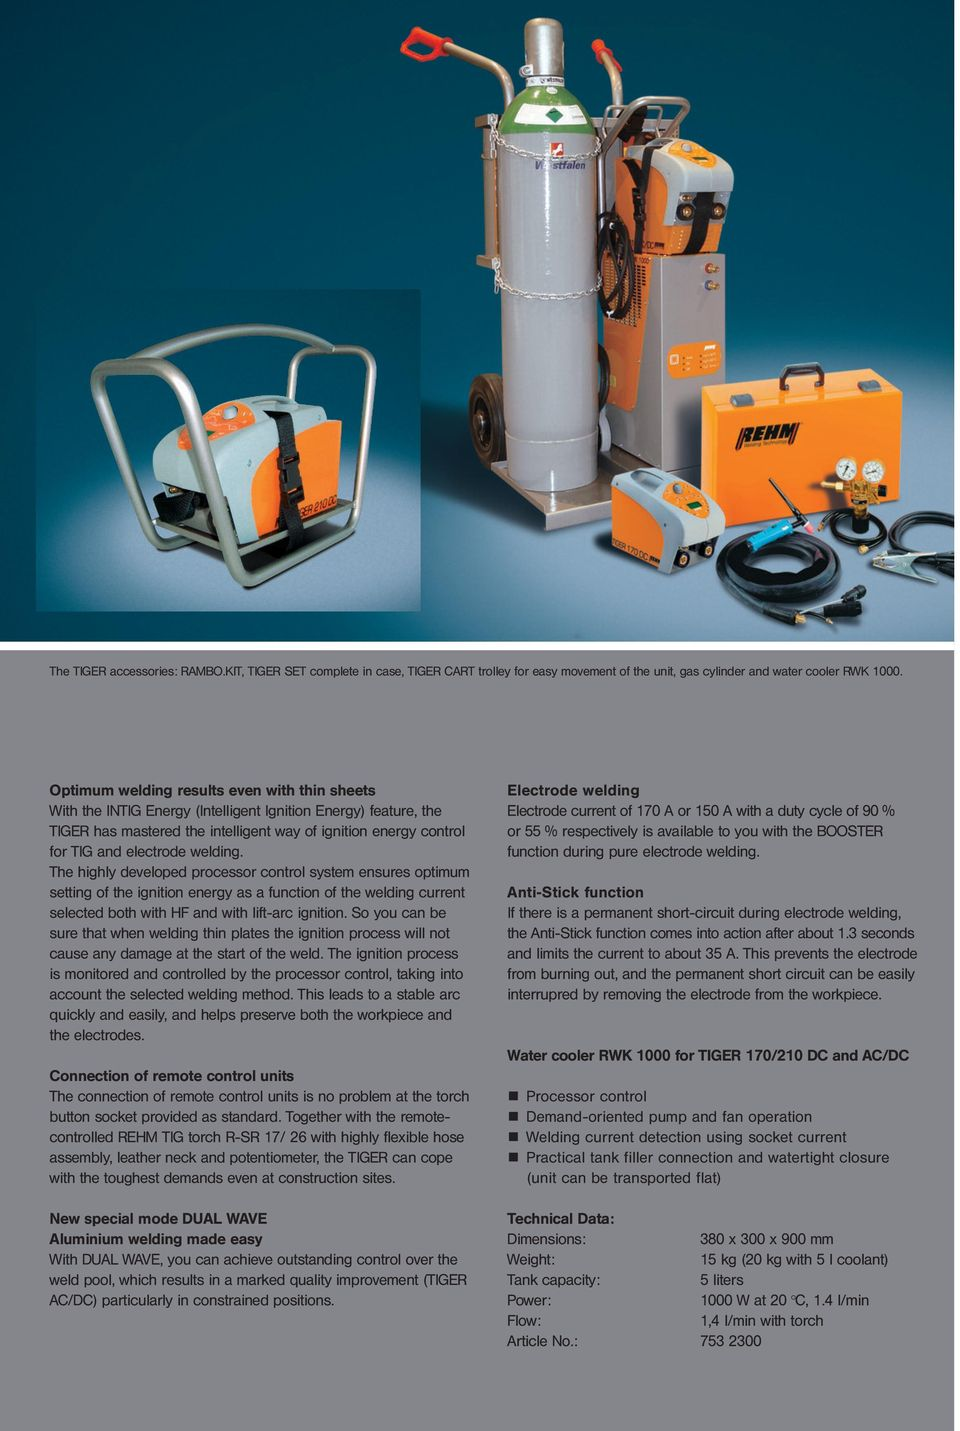 Tig Primary Inverter Tiger 170 210 Dc Ac Pdf Circuit Construction Kit Acdc The Highly Developed Processor Cotrol System Esures Optimum Settig Of Igitio Eergy As A Fuctio